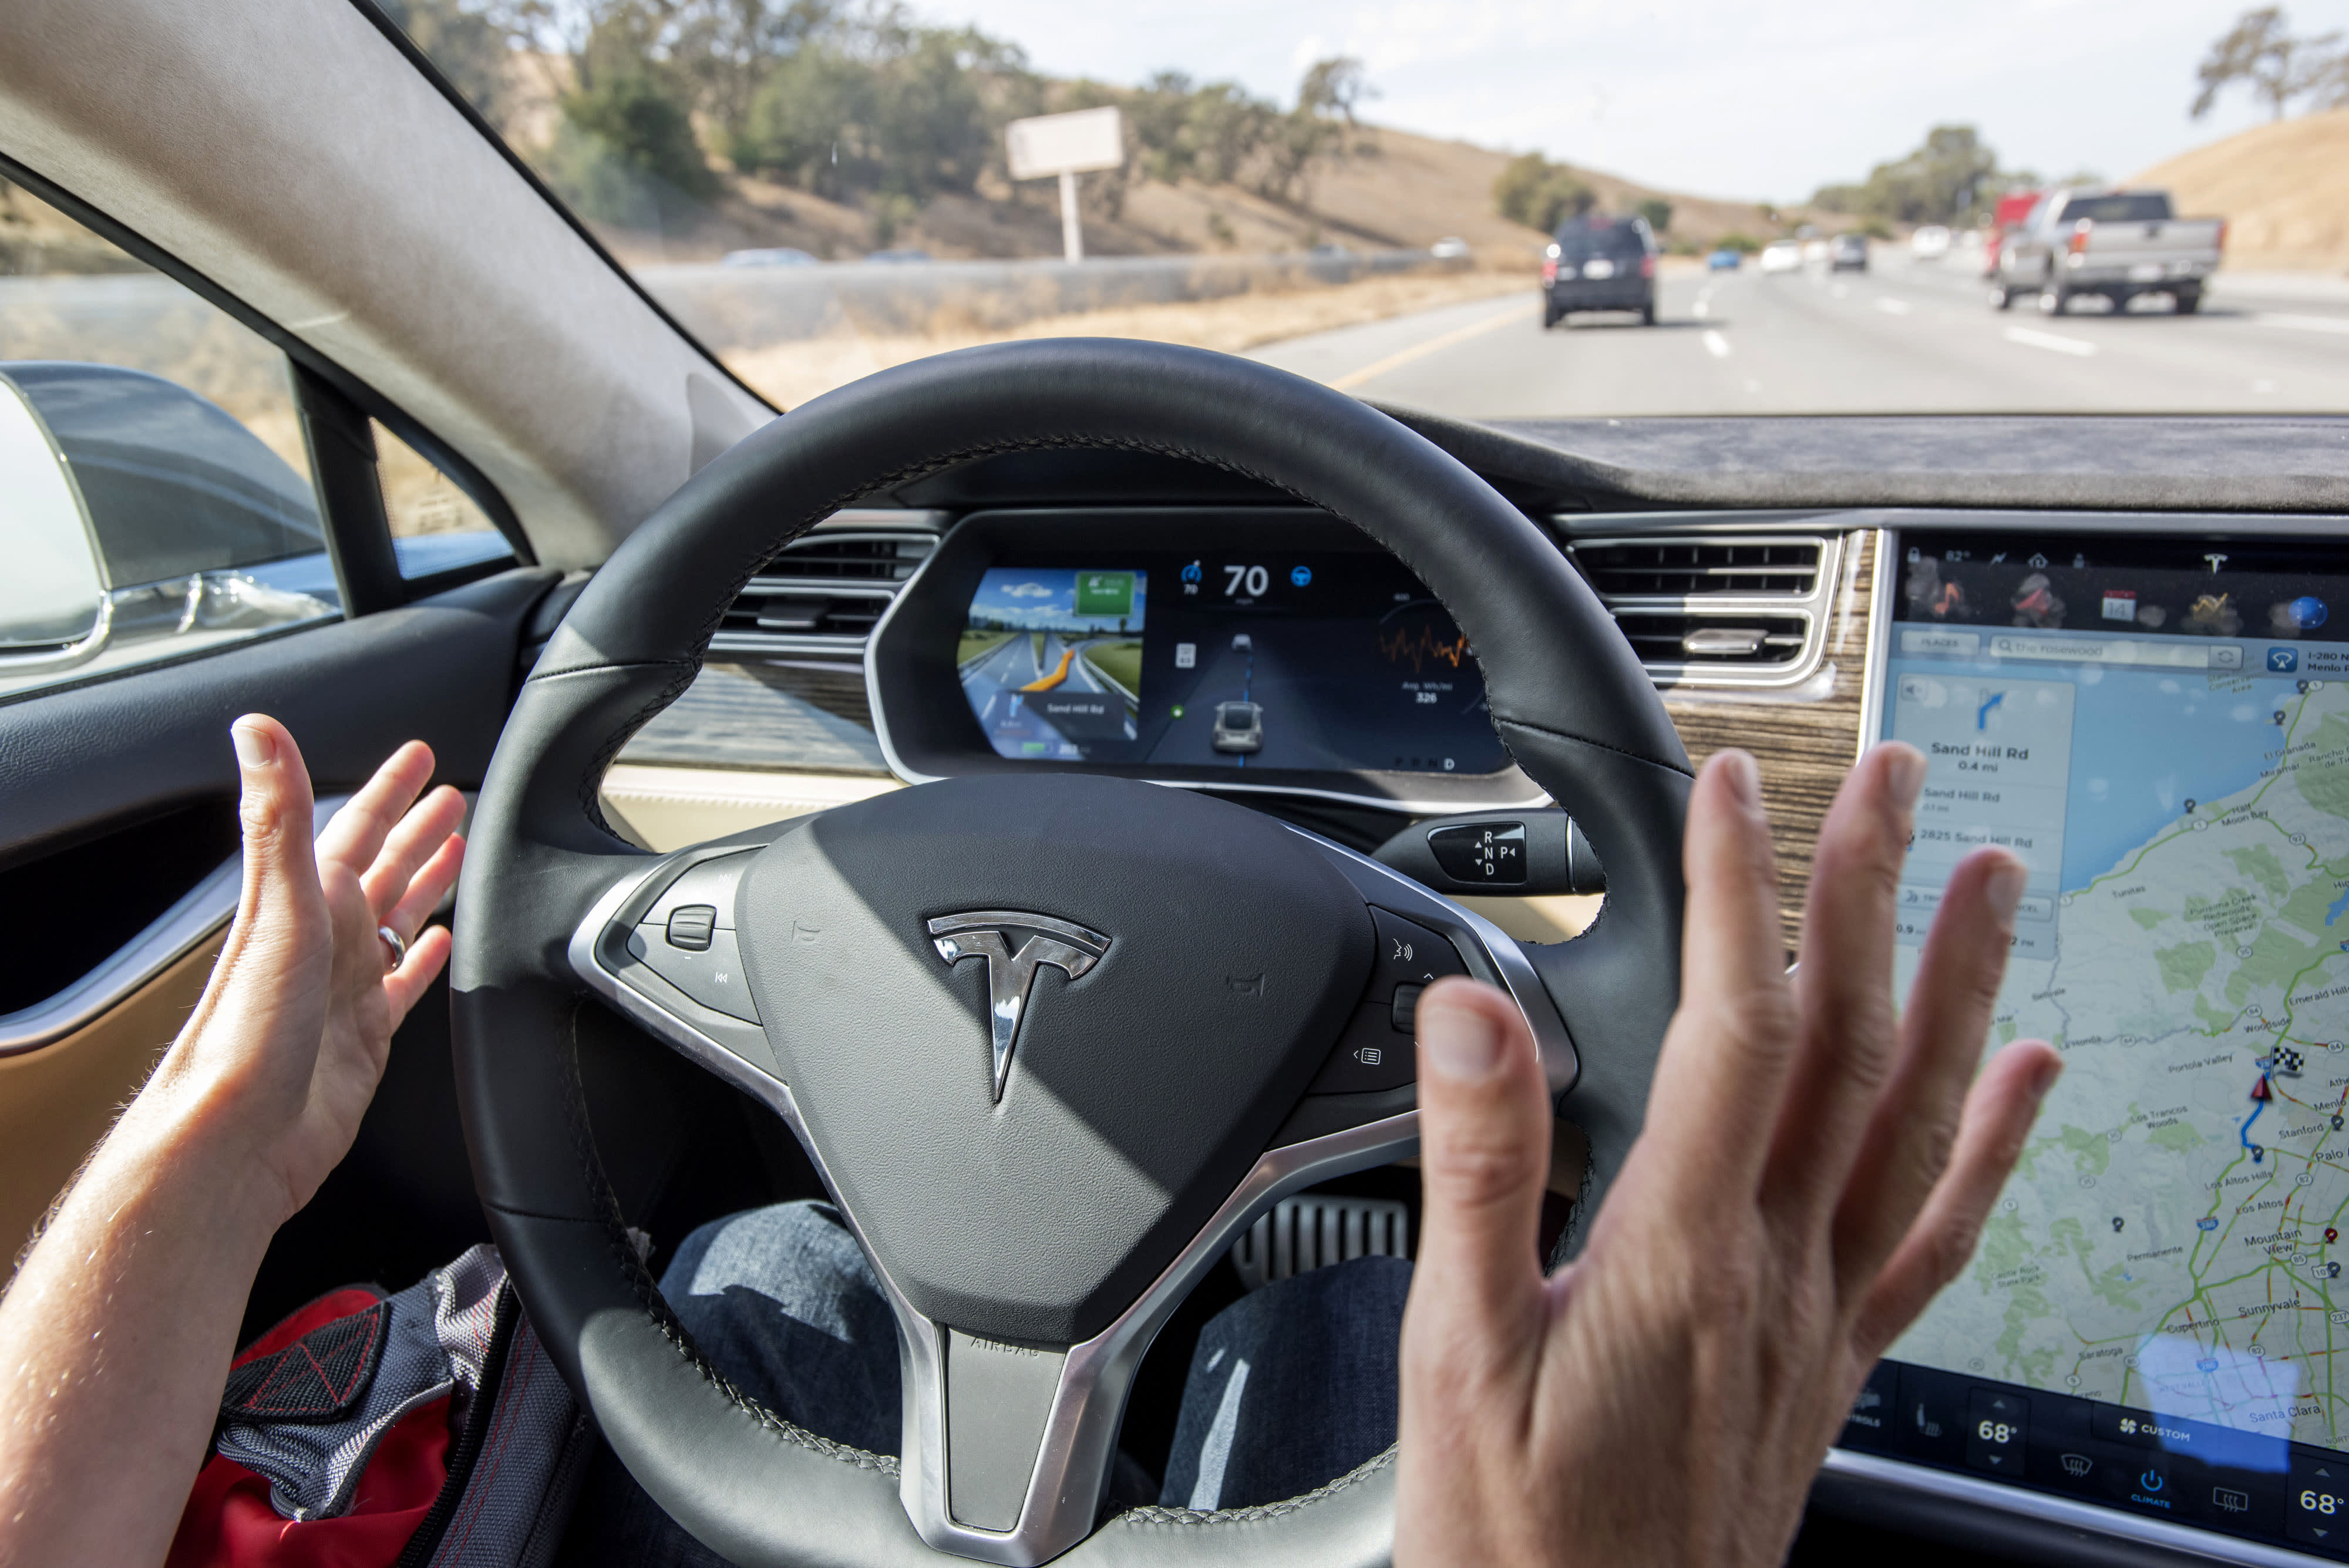 Tesla autopilot was engaged for nearly 14 minutes before 2018 California crash, NTSB says